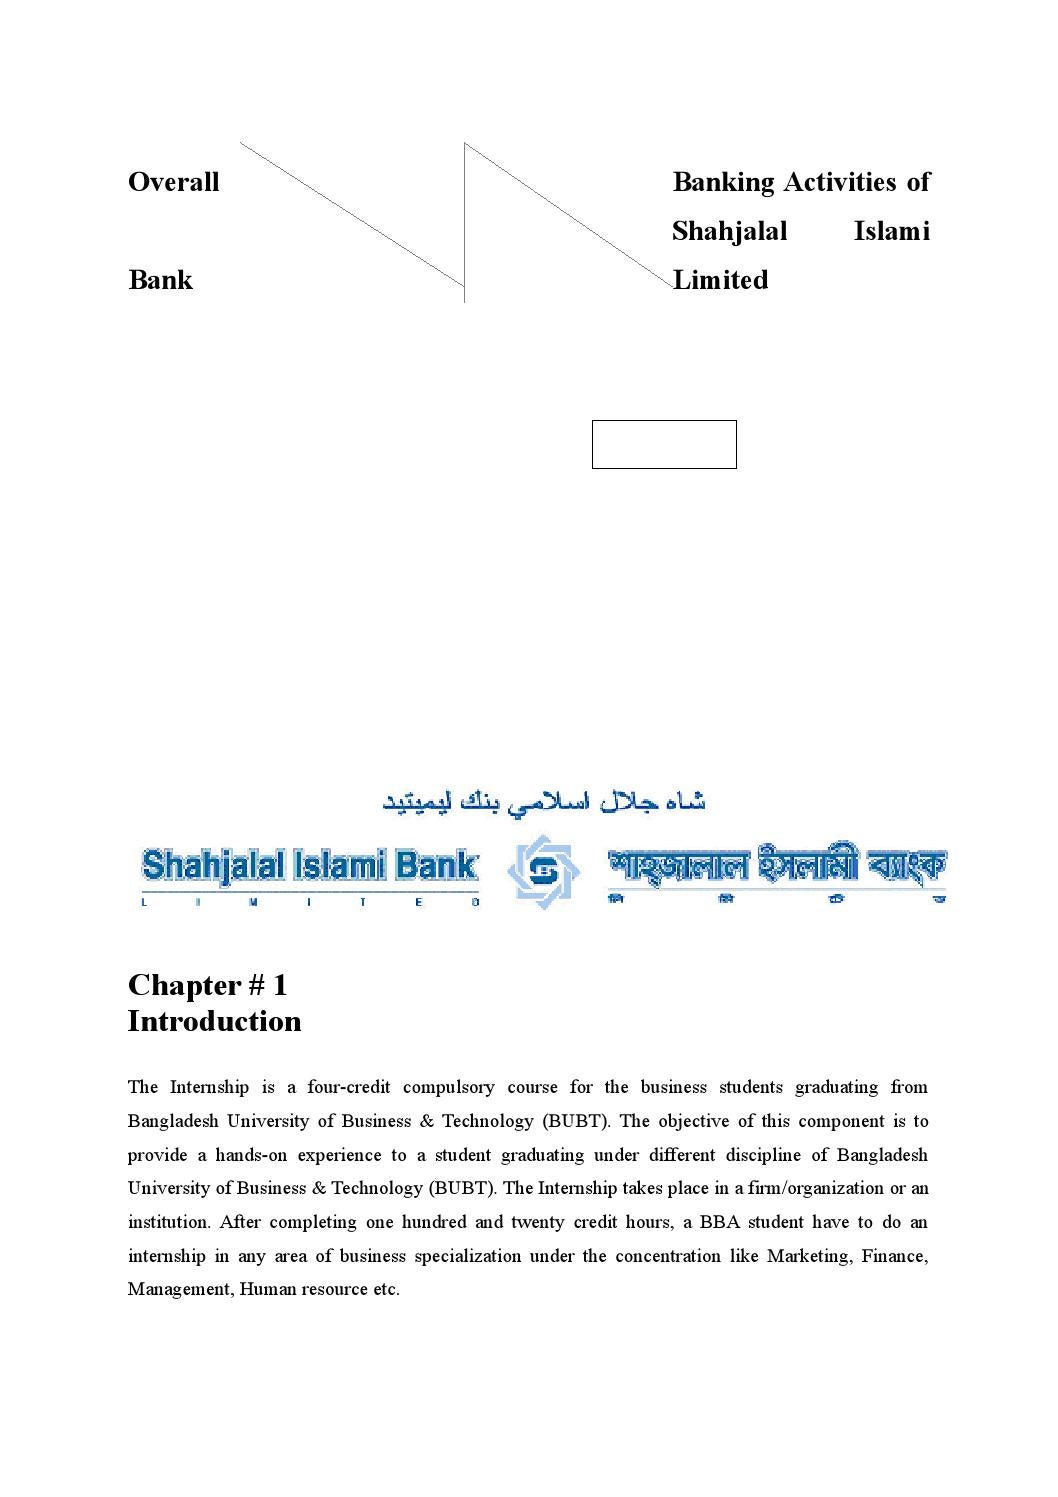 human resource department of shahjalal islami Internship report on risk based capital adequacy (basel-ii) of shahjalal islami bank ltd posted on june 9, 2012 by free4u proximity of practical scenario is a must to make theoretical concept and learning fruitful.